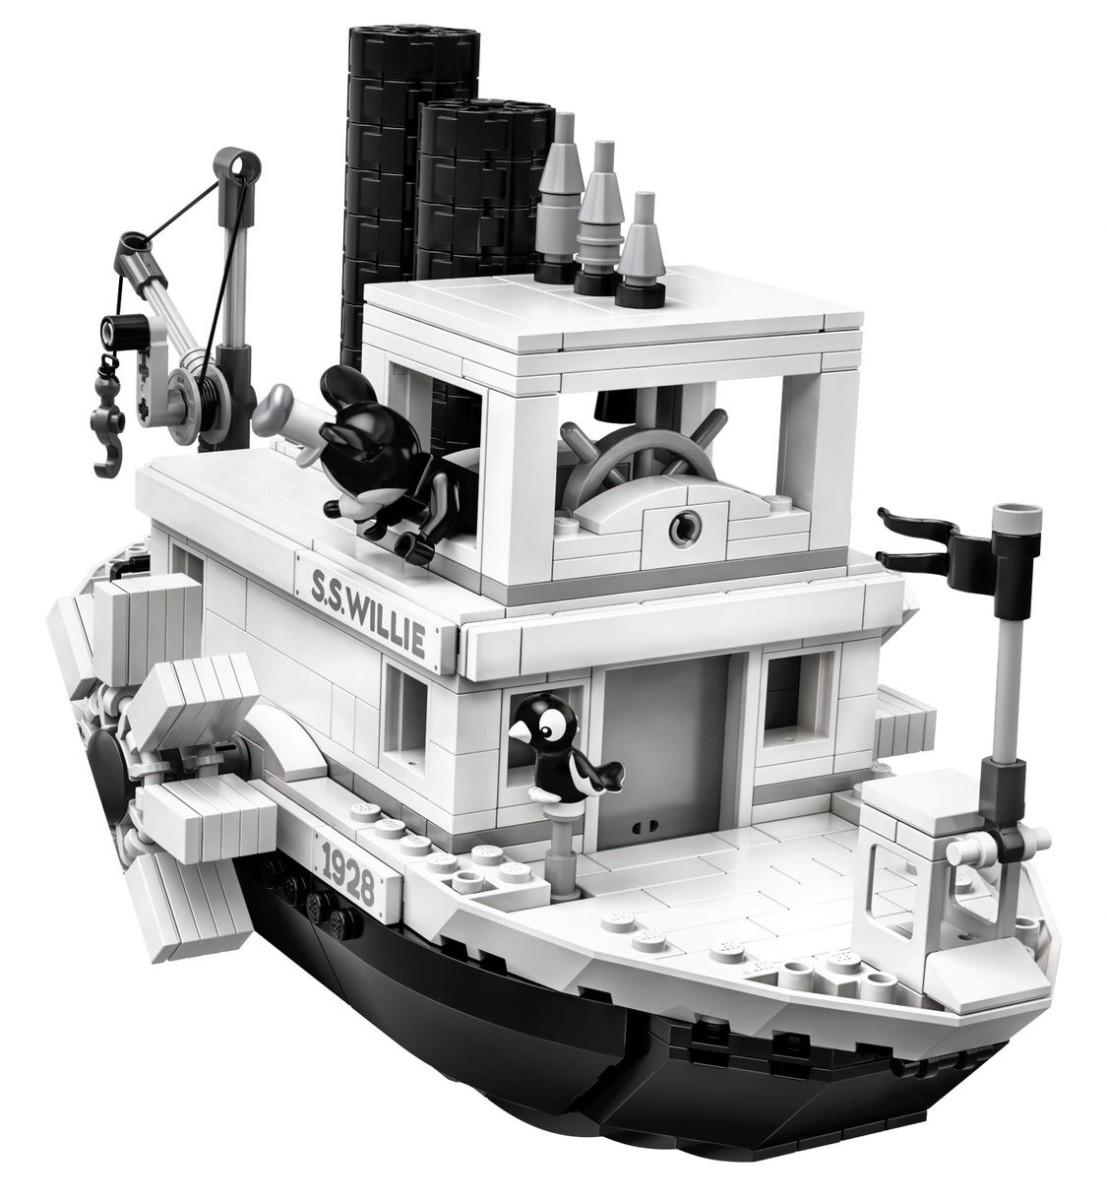 LEGO Steamboat Willie Set Reveal! Details Below! 7